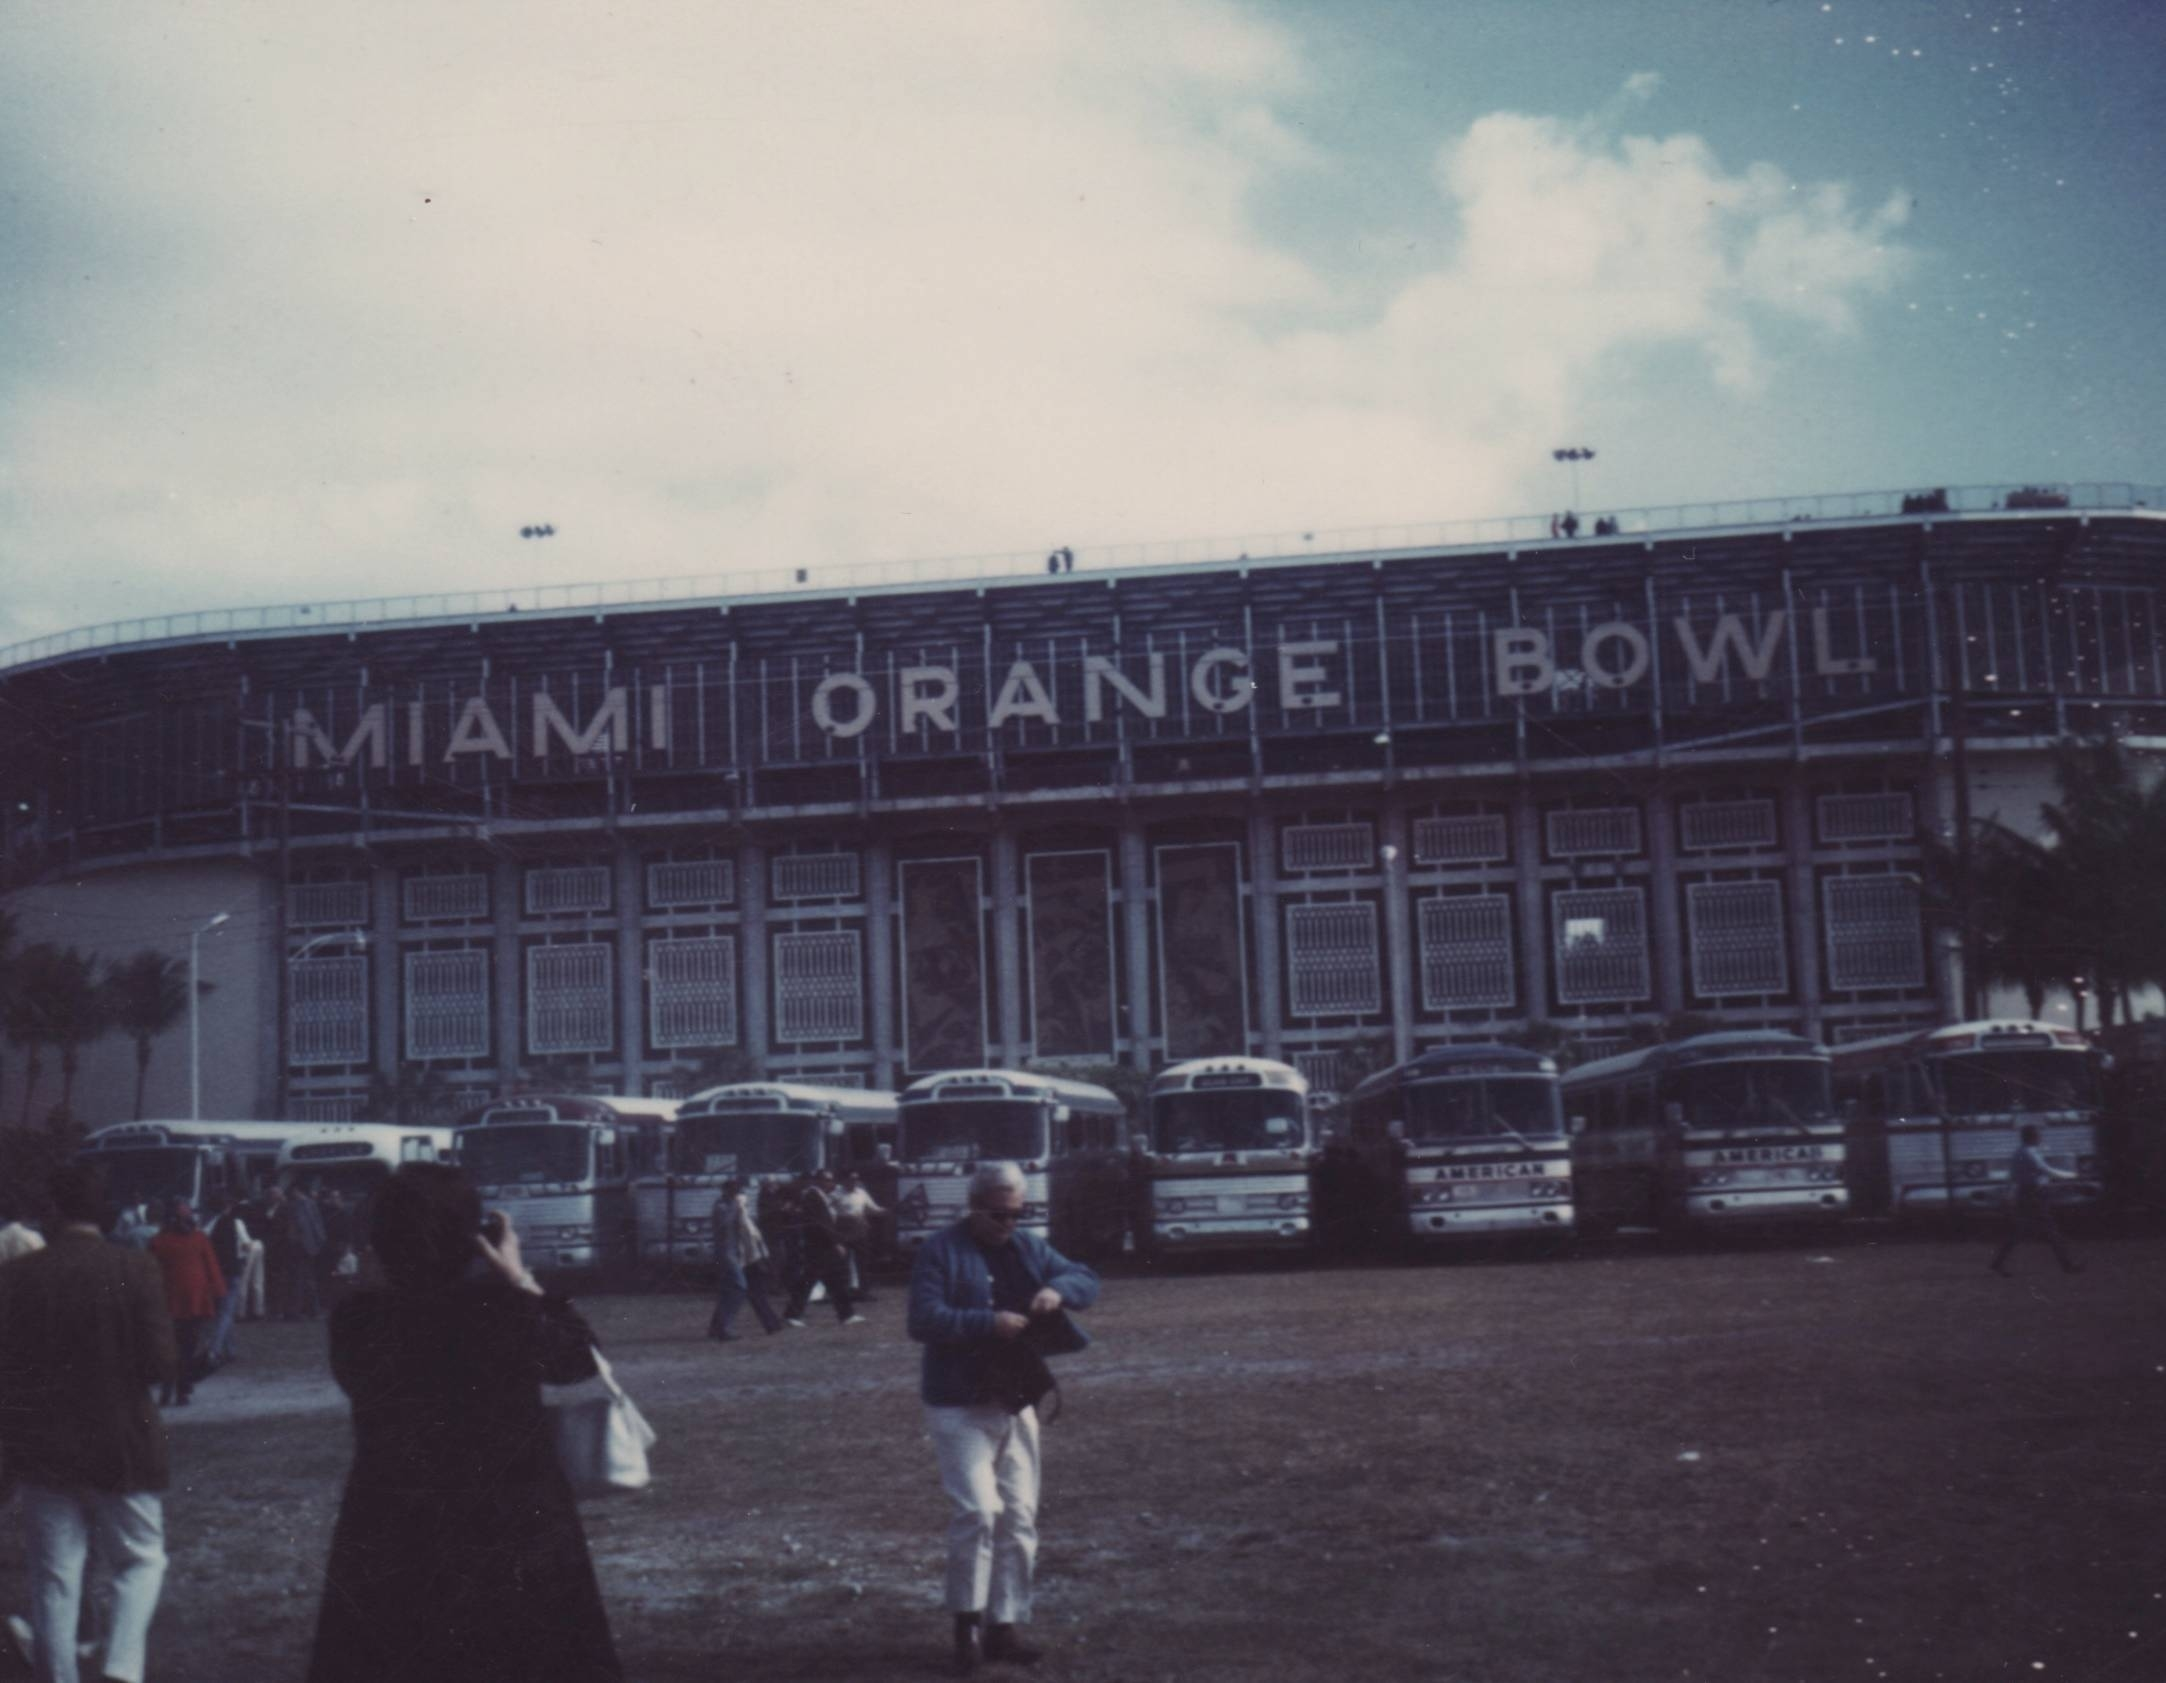 File:miami Orange Bowl (Super Bowl V) - Wikimedia Commons inside Super Bowl Miami Orange Bowl